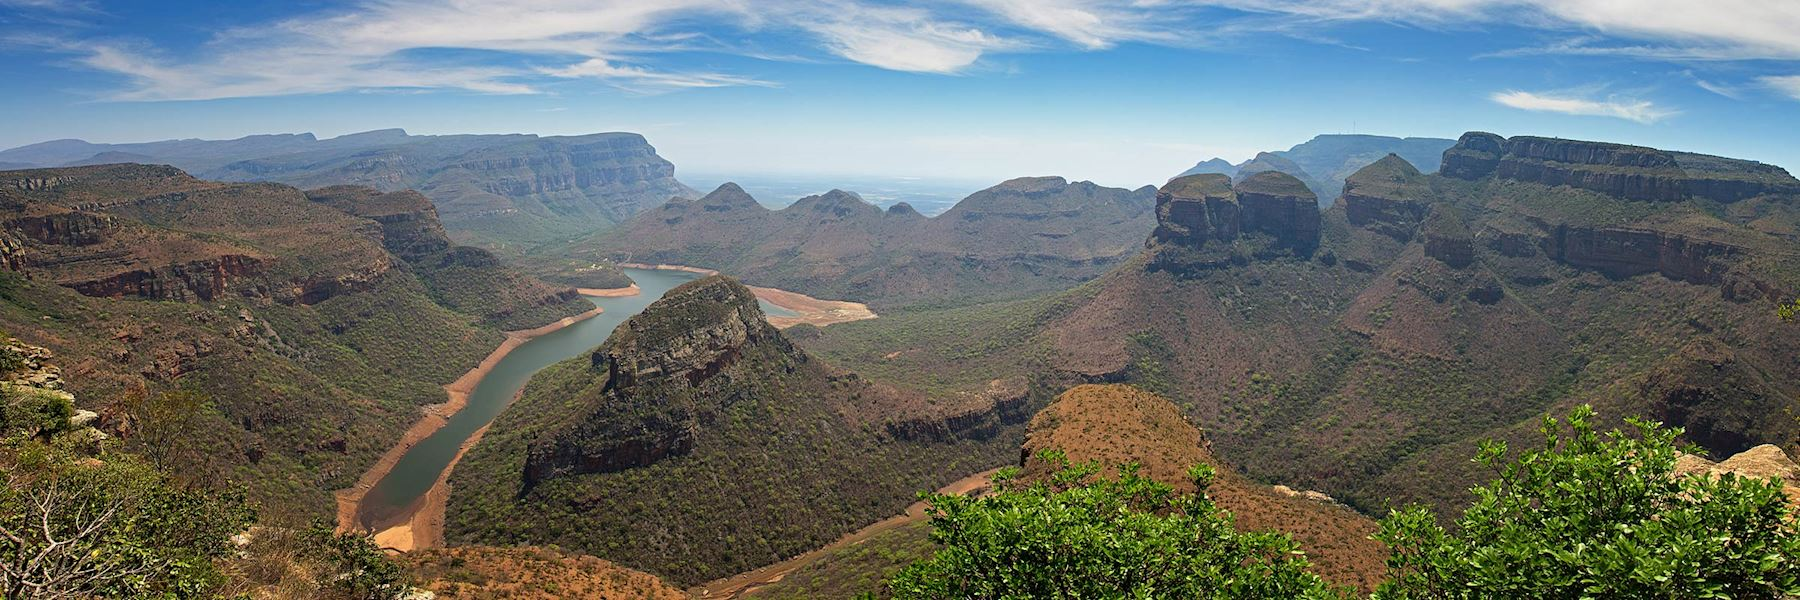 Visit Blyde River Canyon Nature Reserve, South Africa